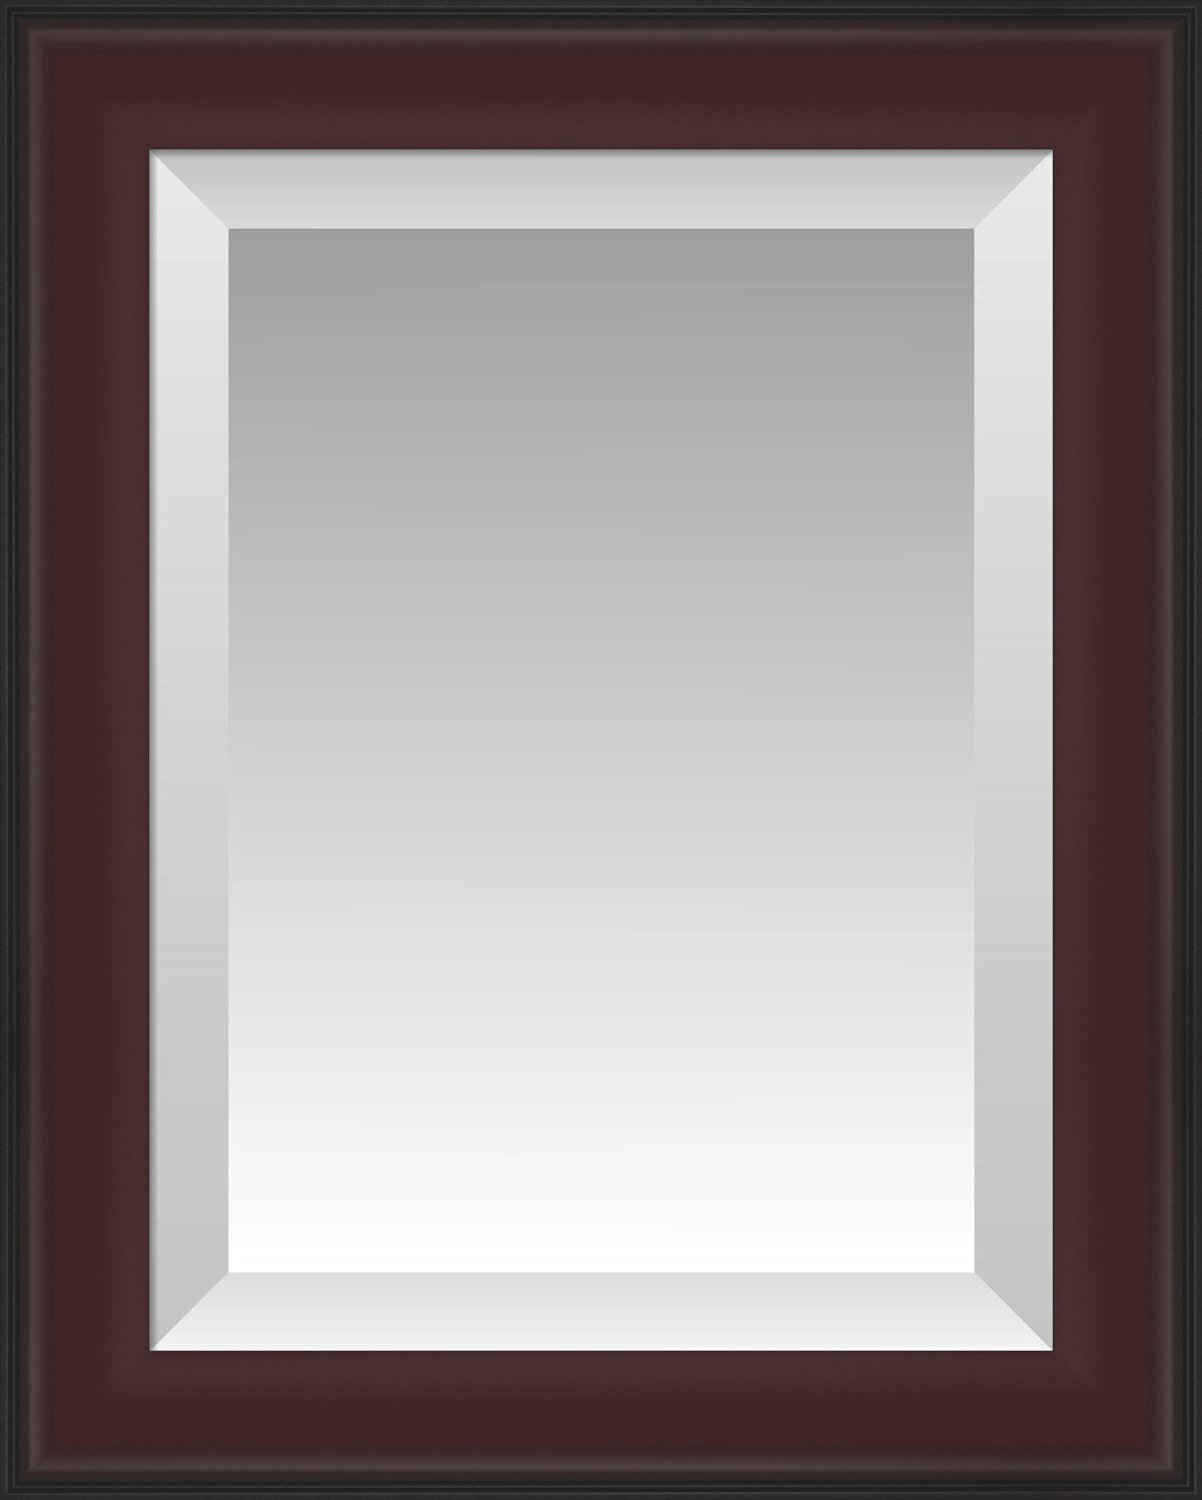 Formal Dark Cherry with Black Outer Edge Beveled Wall Mirror, Size 19.5 X 23.5